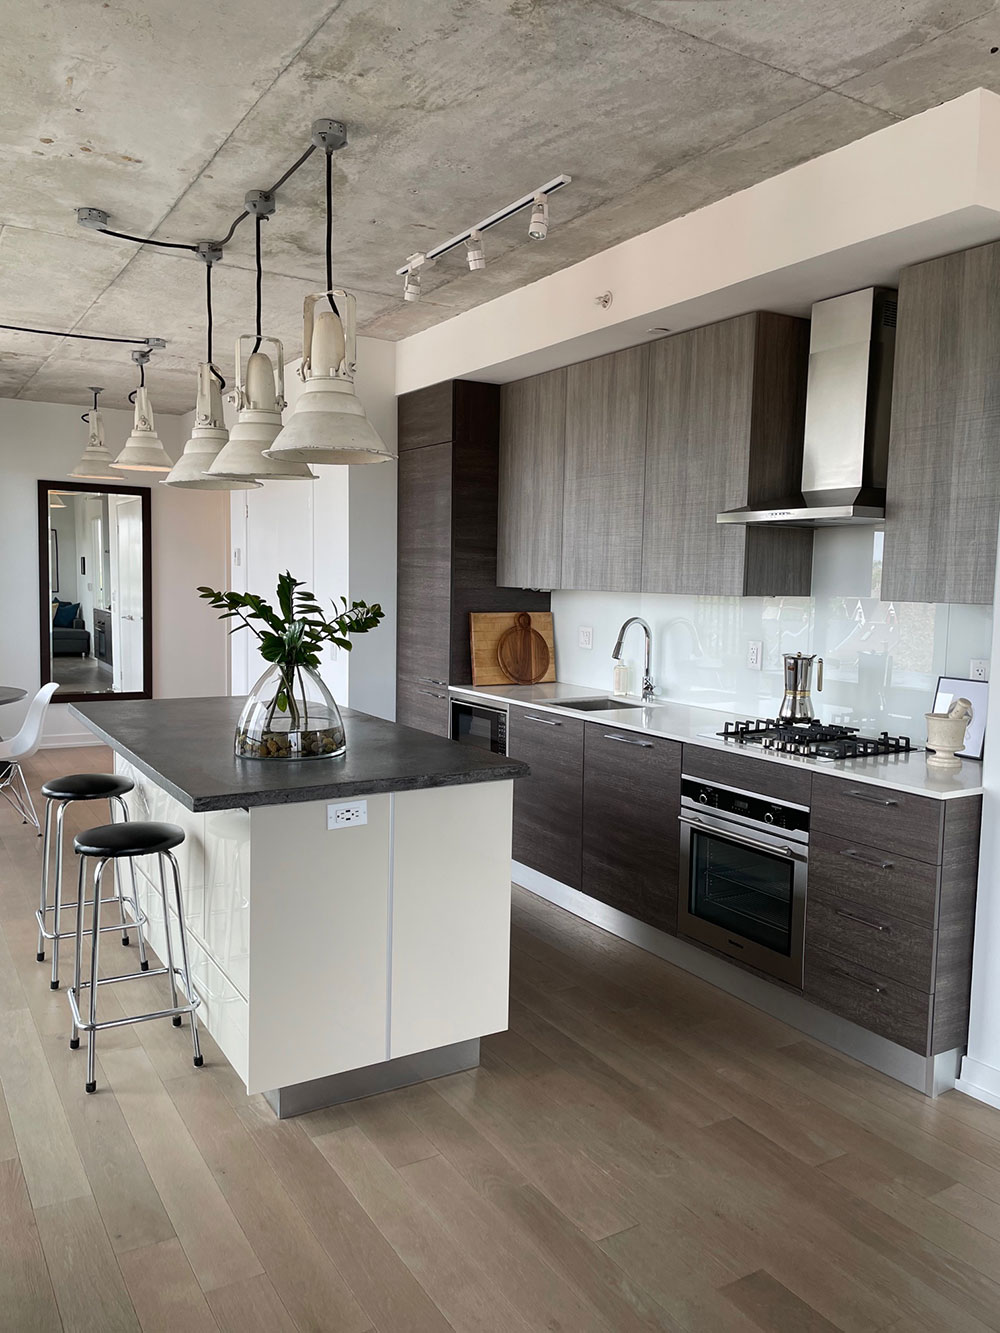 Homefront Redesigns Indian Grove kitchen